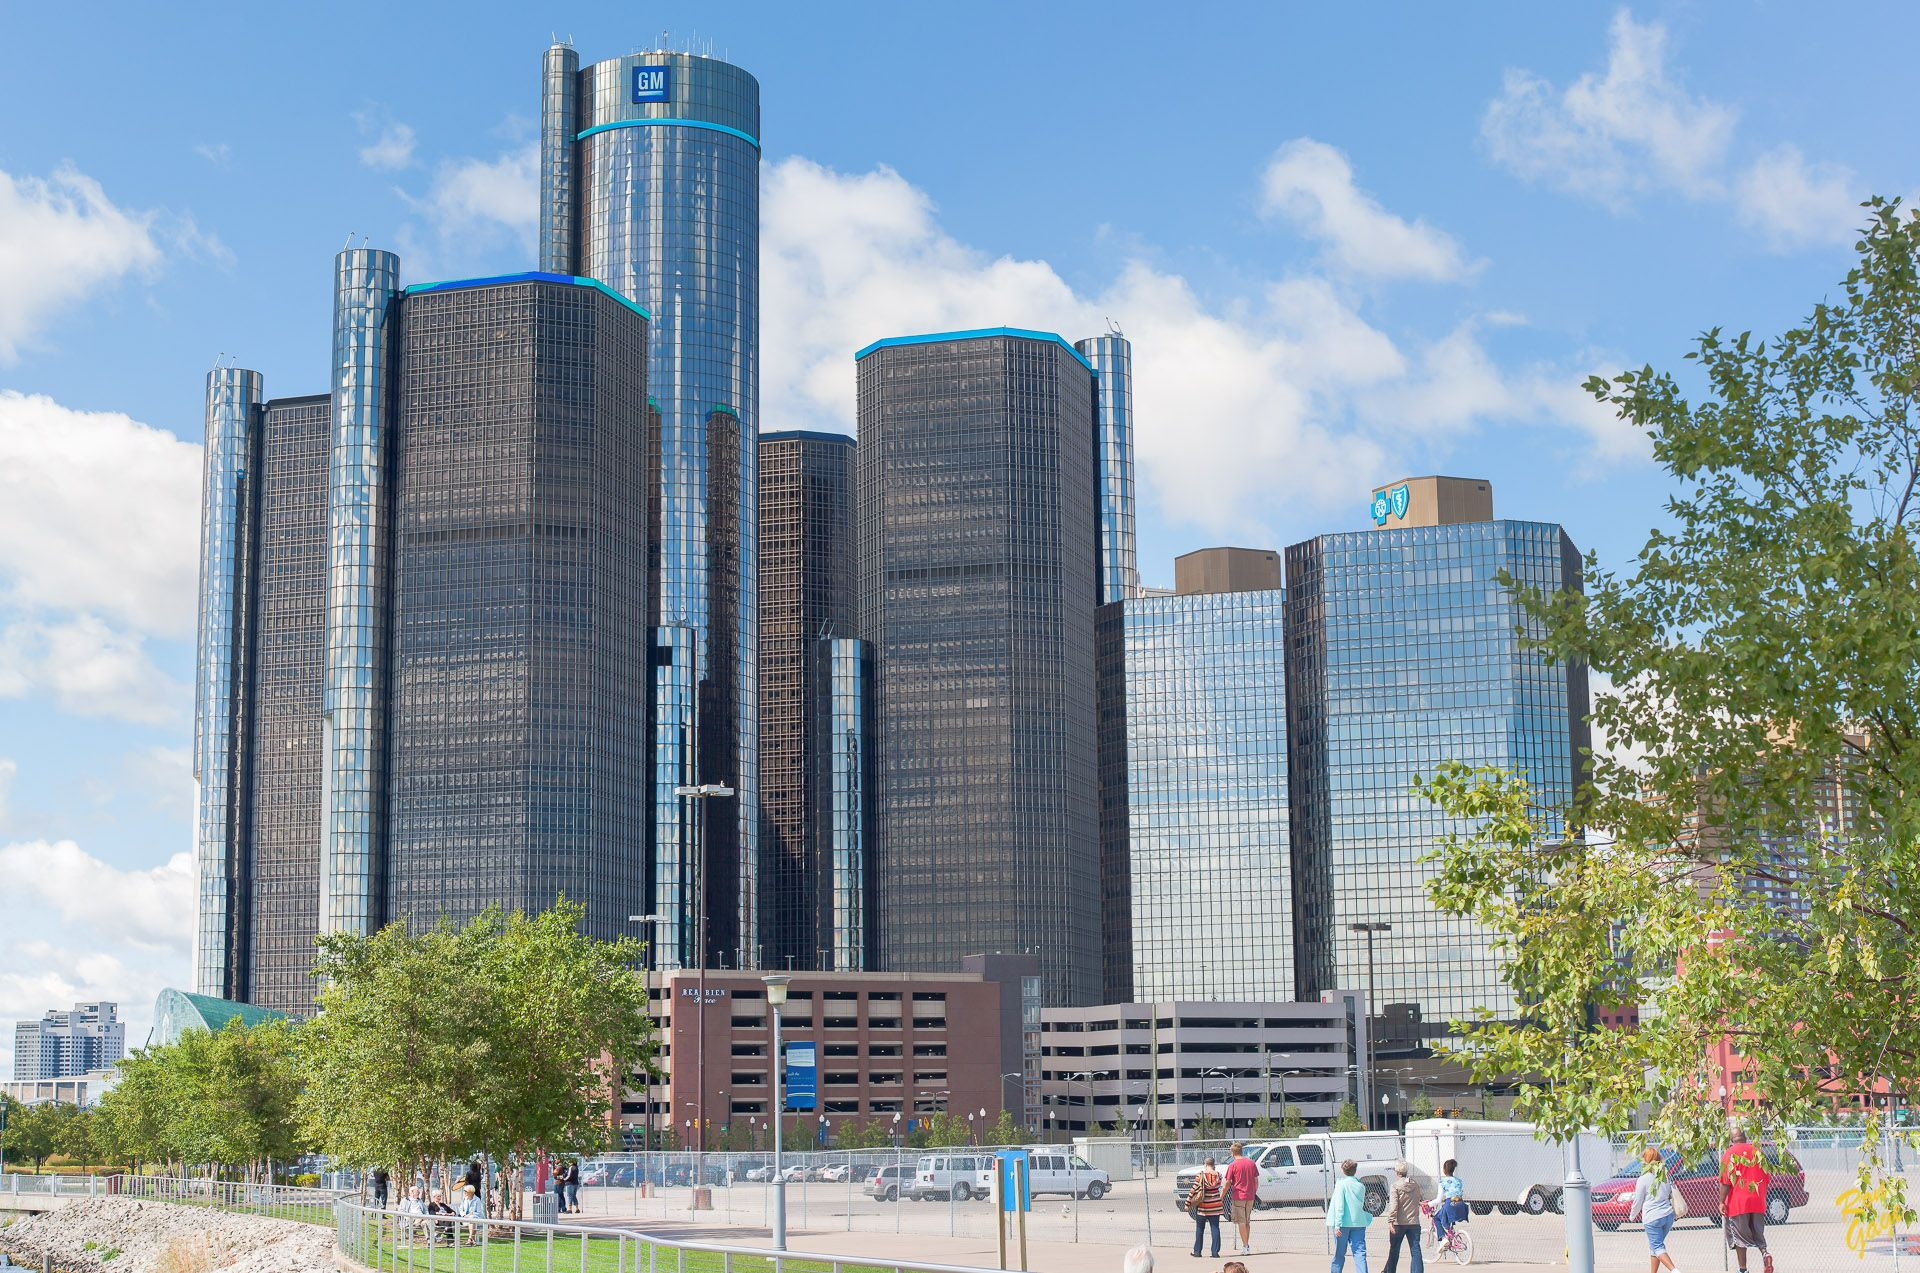 The Renaissance Center The Headquarters For General Motors As